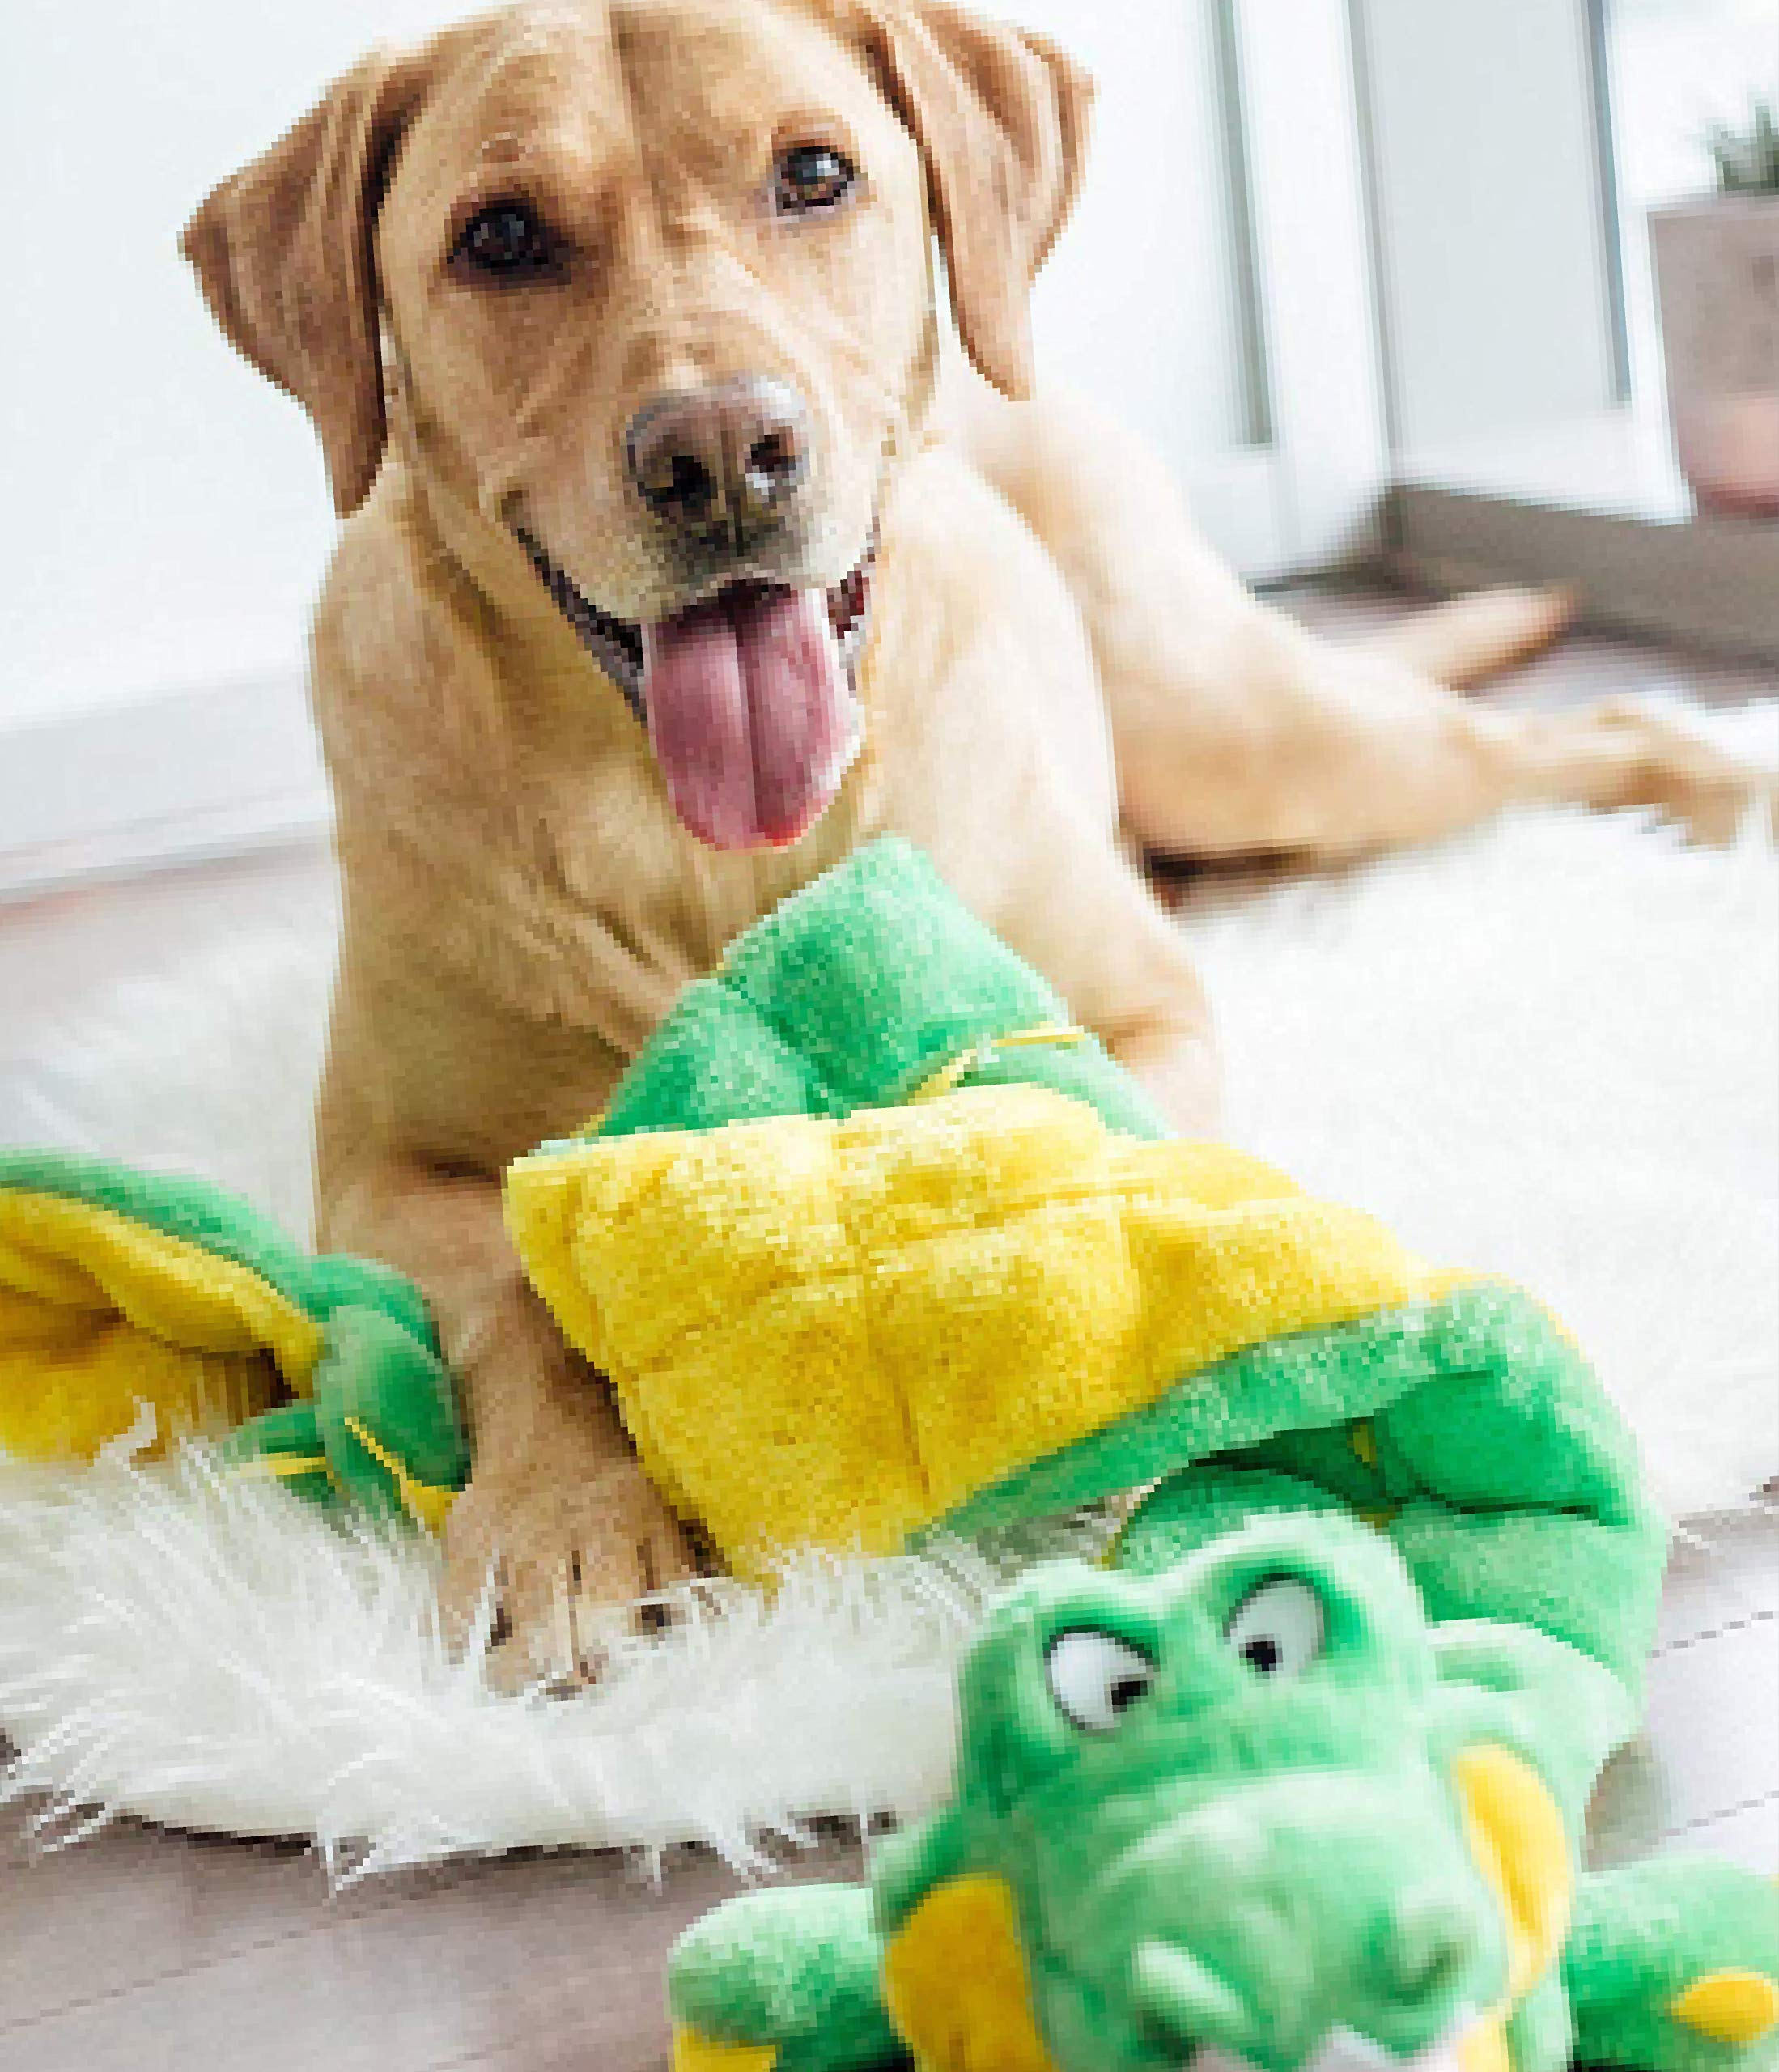 Outward-Hound-Squeaker-Matz-Squeaky-Dog-Toy-Interactive-Cuddly-Gator-Soft-Toy-for-Dogs-Tough-Durable-Plush-Fluffy-Toy-for-Awesome-Pets